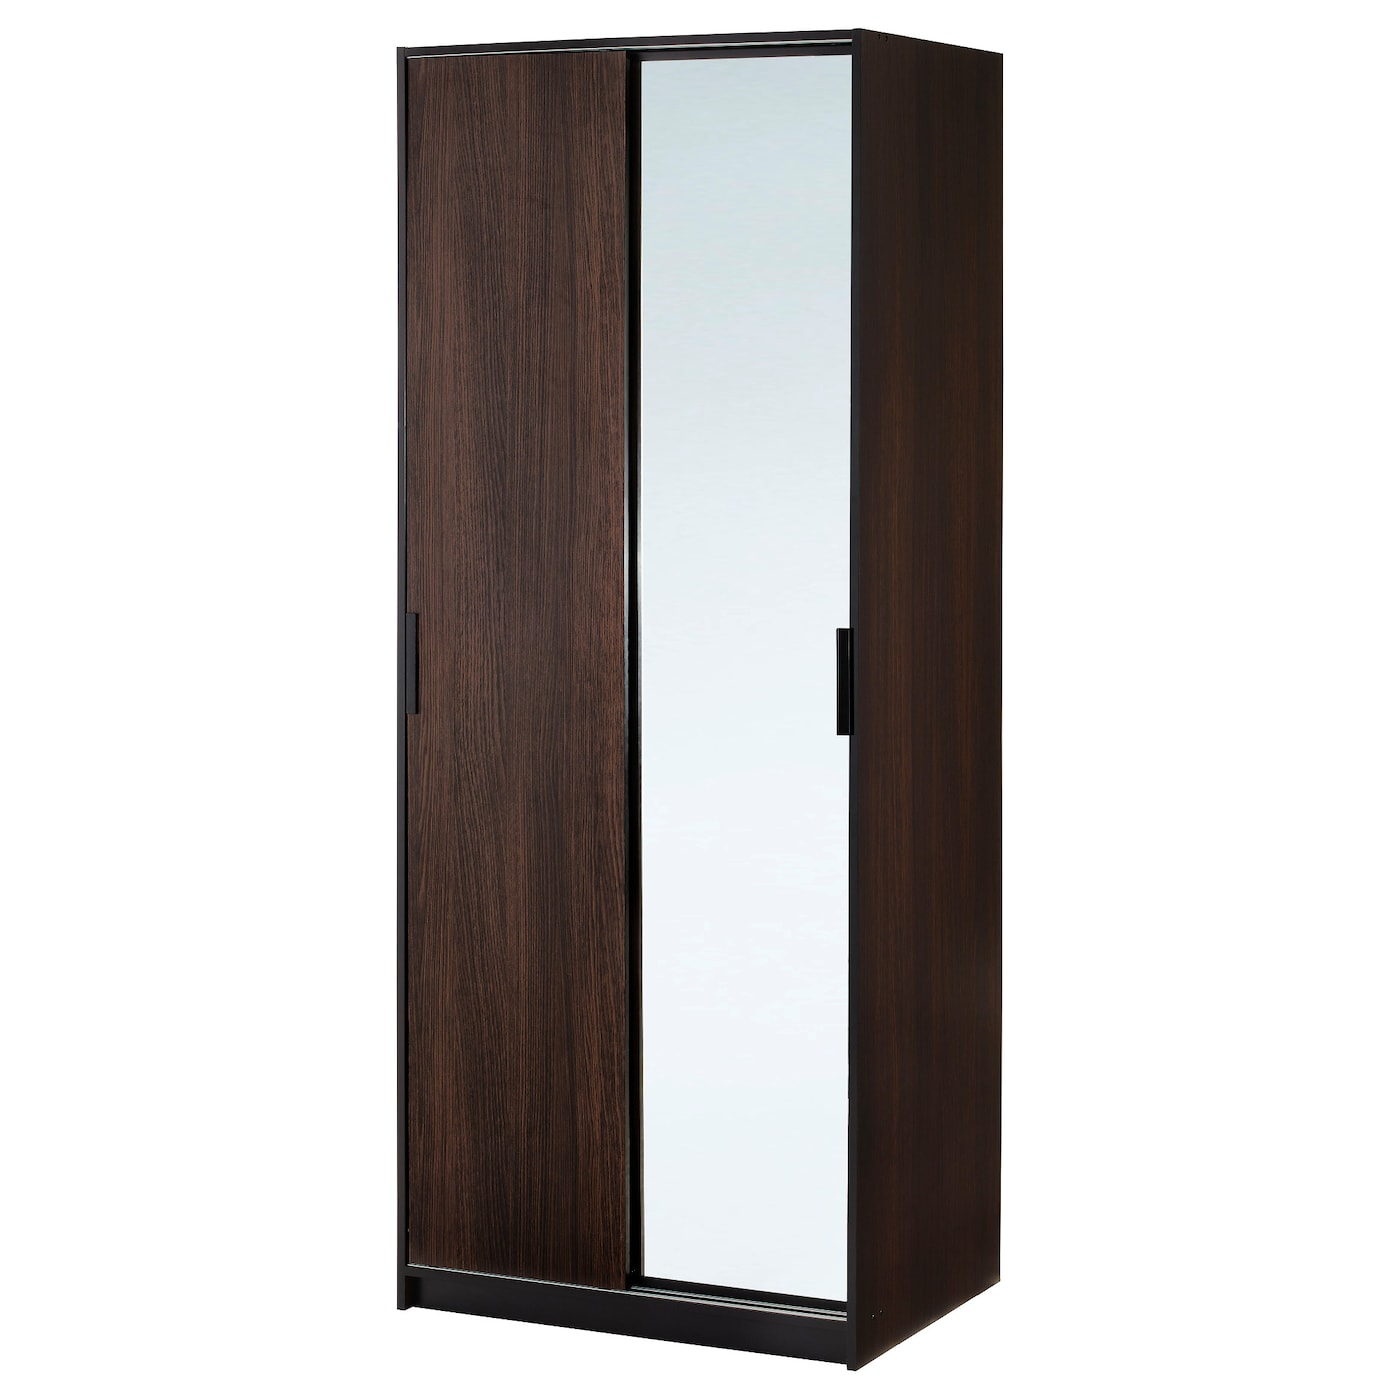 Trysil wardrobe w sliding doors 4 drawers white 118x61x202 for Armoire de toilette miroir ikea